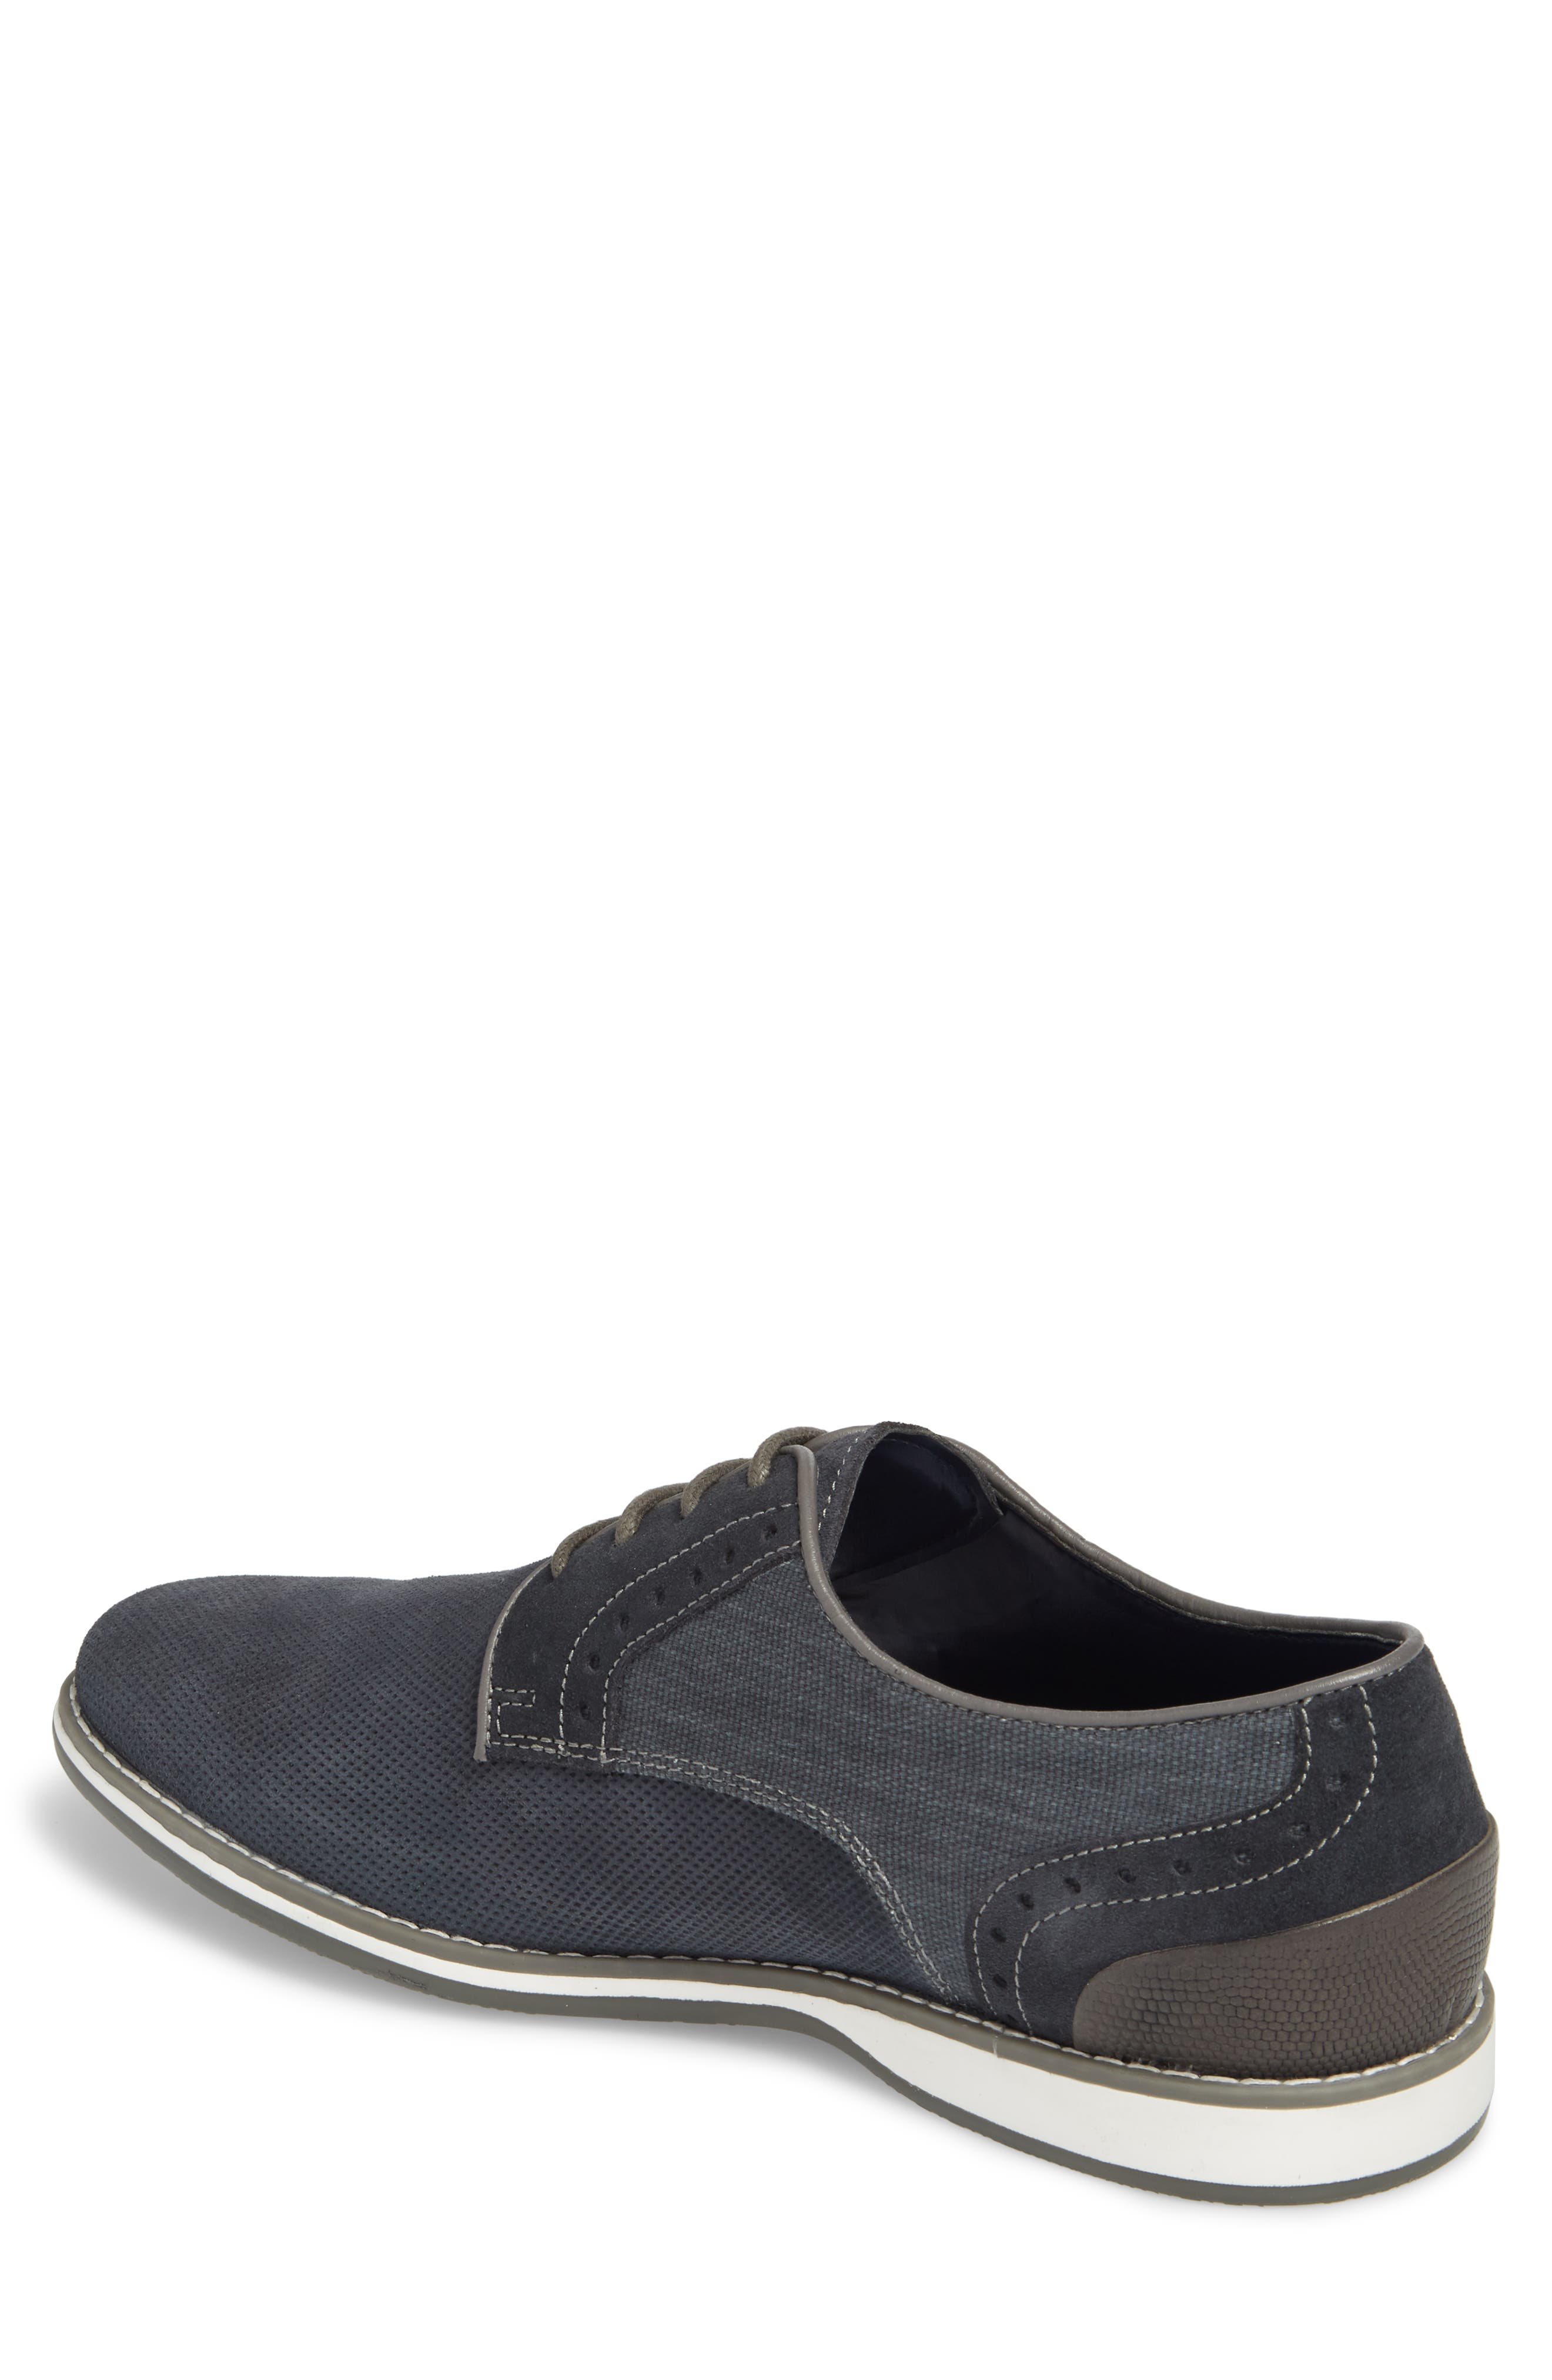 Weiser Lace-up Derby,                             Alternate thumbnail 2, color,                             NAVY